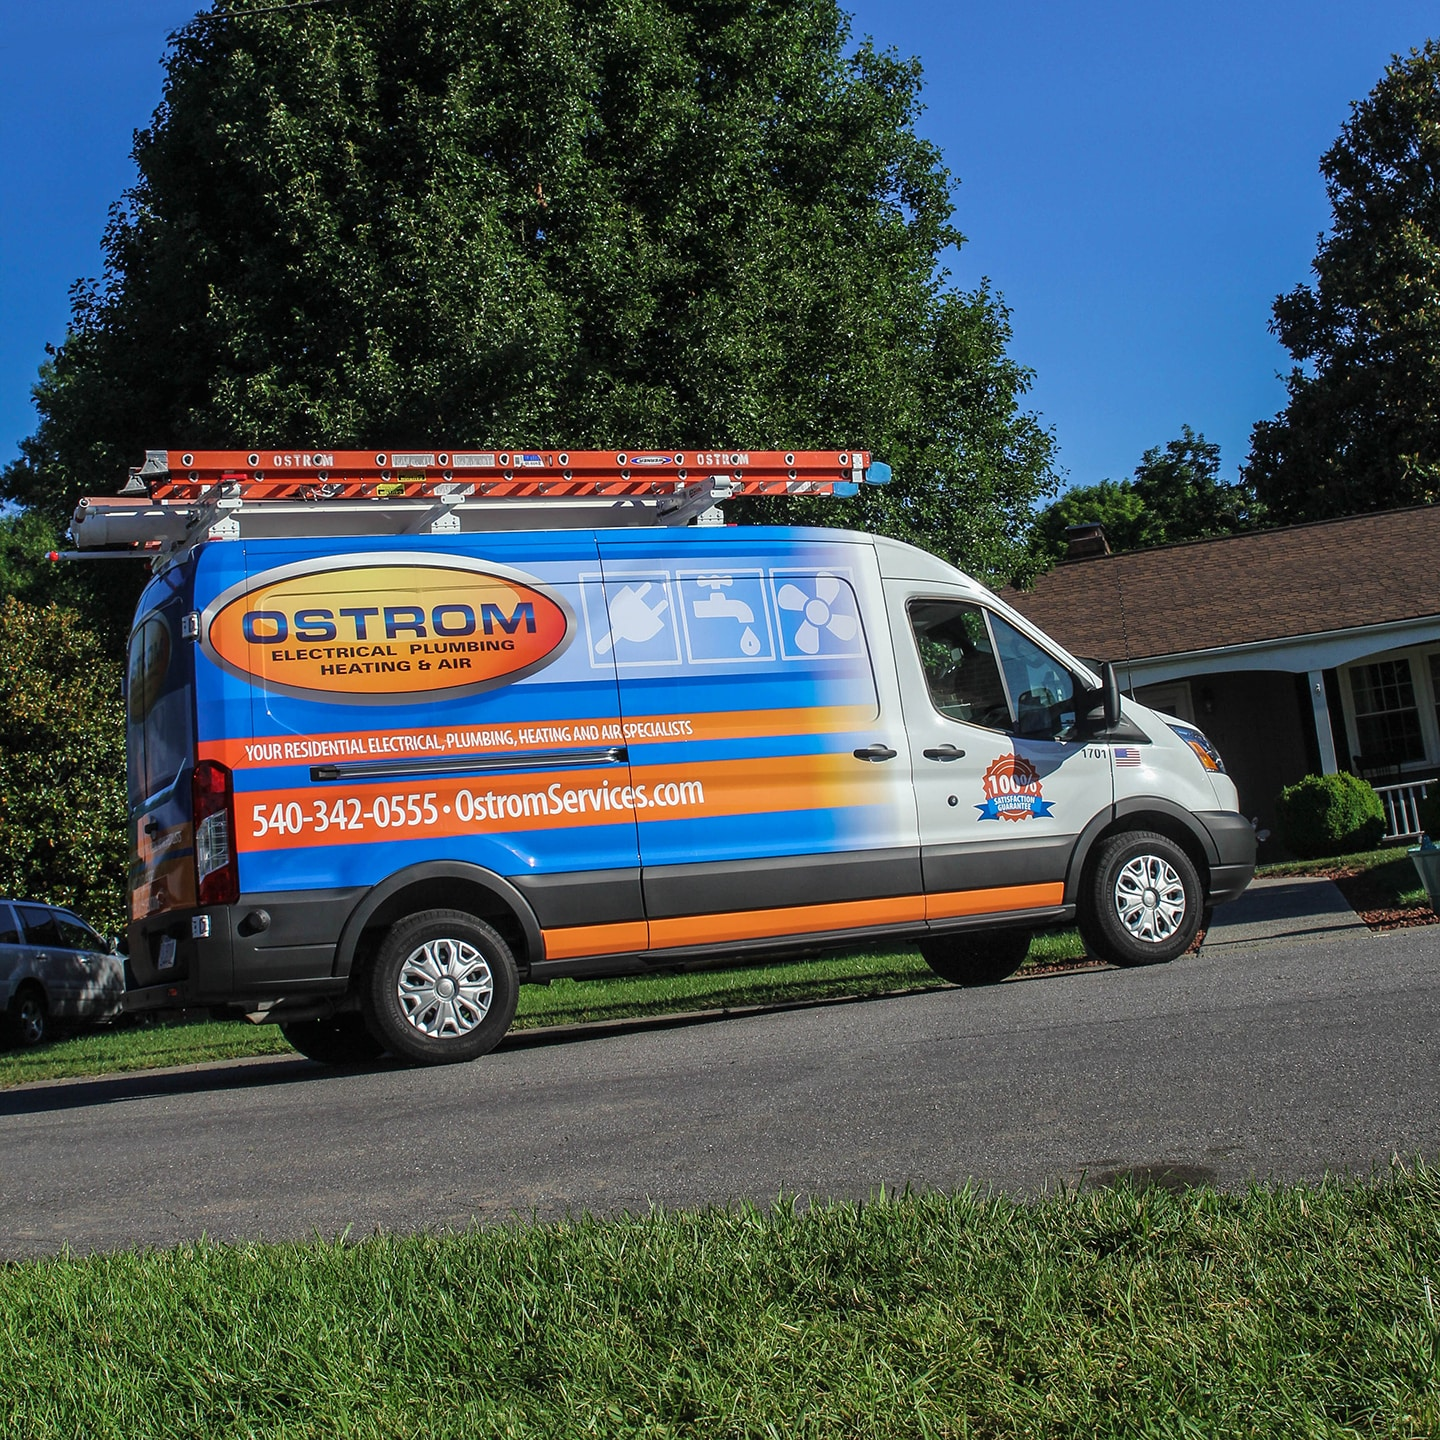 Ostrom Electrical Plumbing Heating & Air